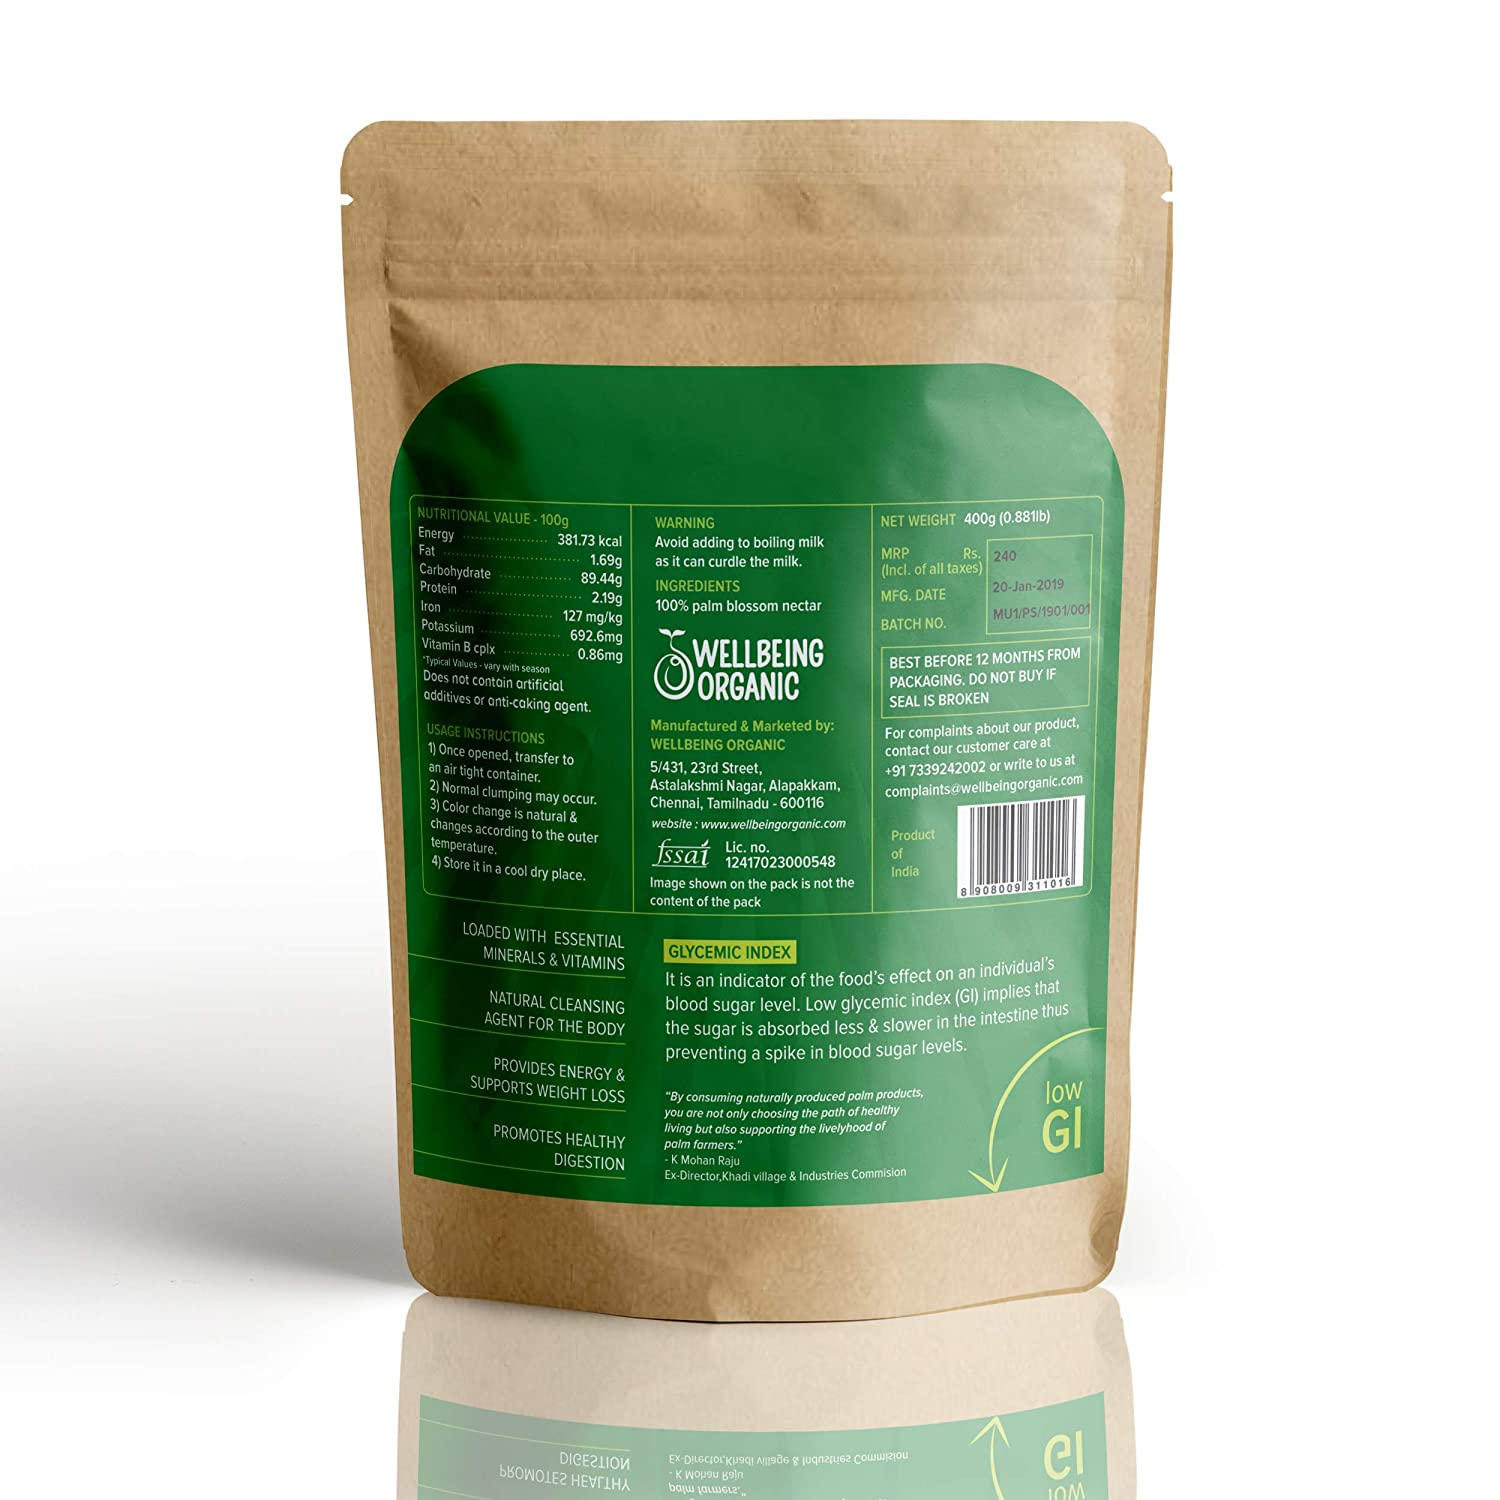 Wellbeing Organic Palm Culture's Jaggery, Crystallised (400 g)